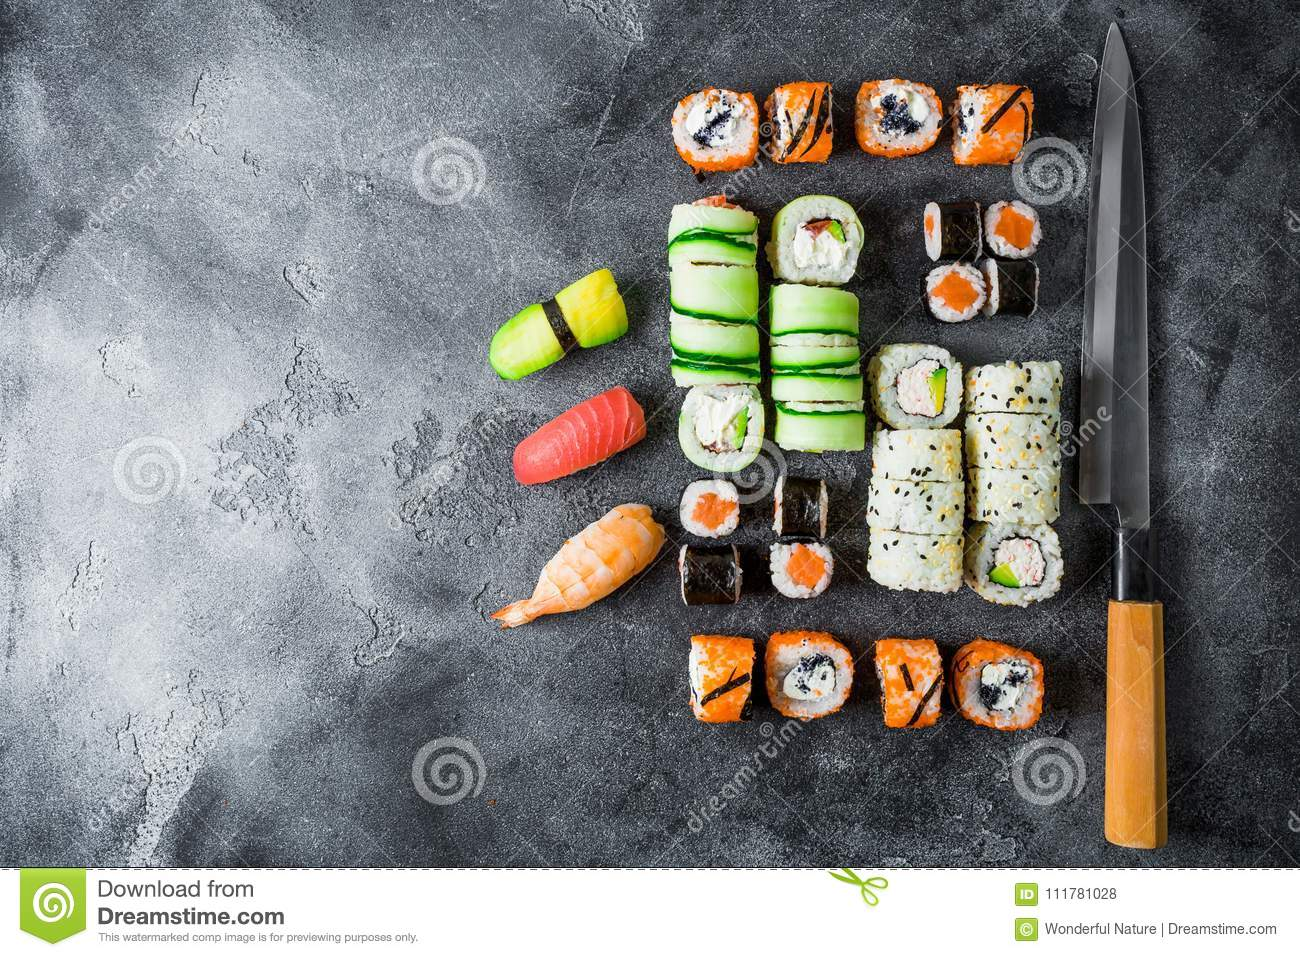 Japanese food concept with sushi, rolls and knife on dark background. Flat lay, Top view